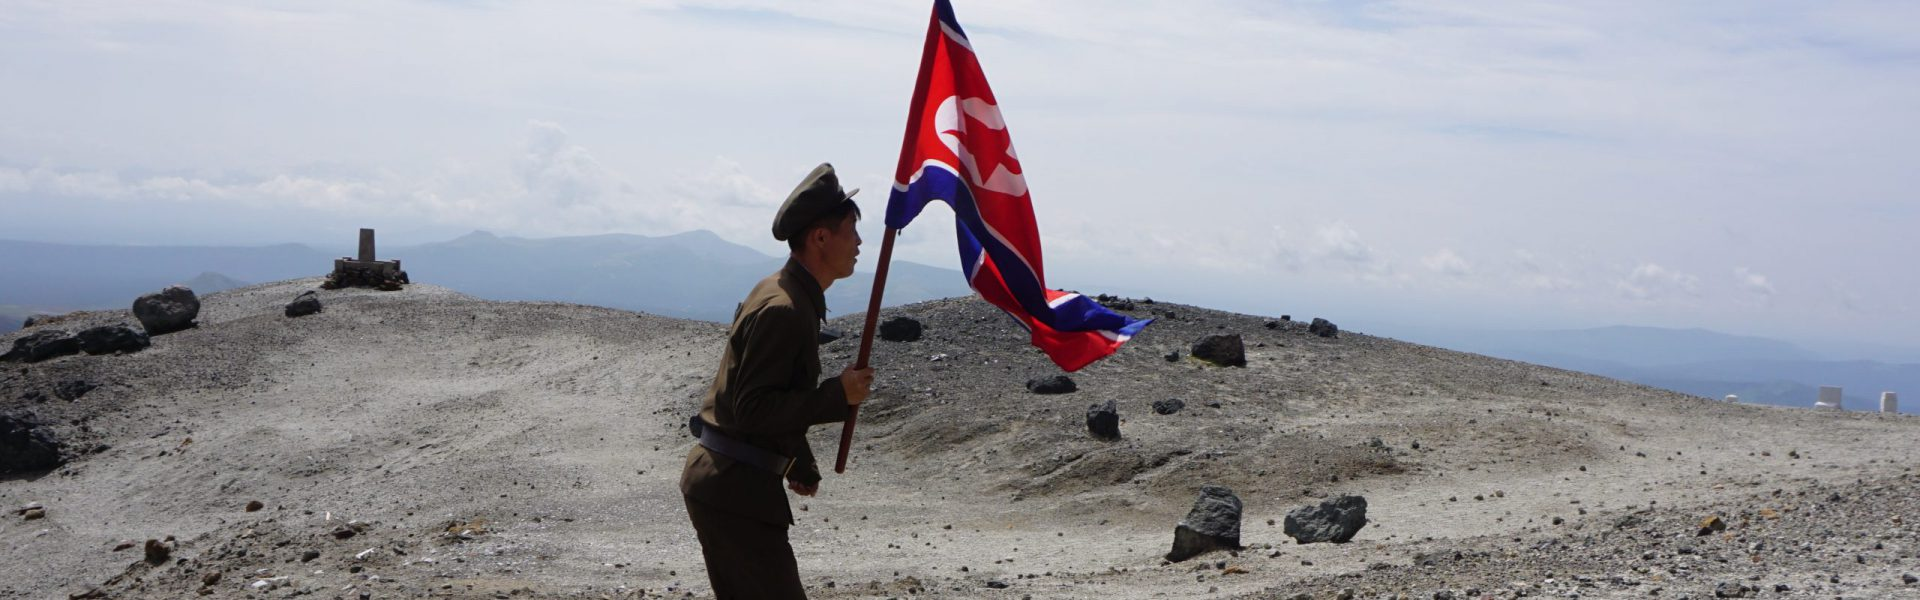 A soldier carrying a flag on Mt. Paektu, North Korea